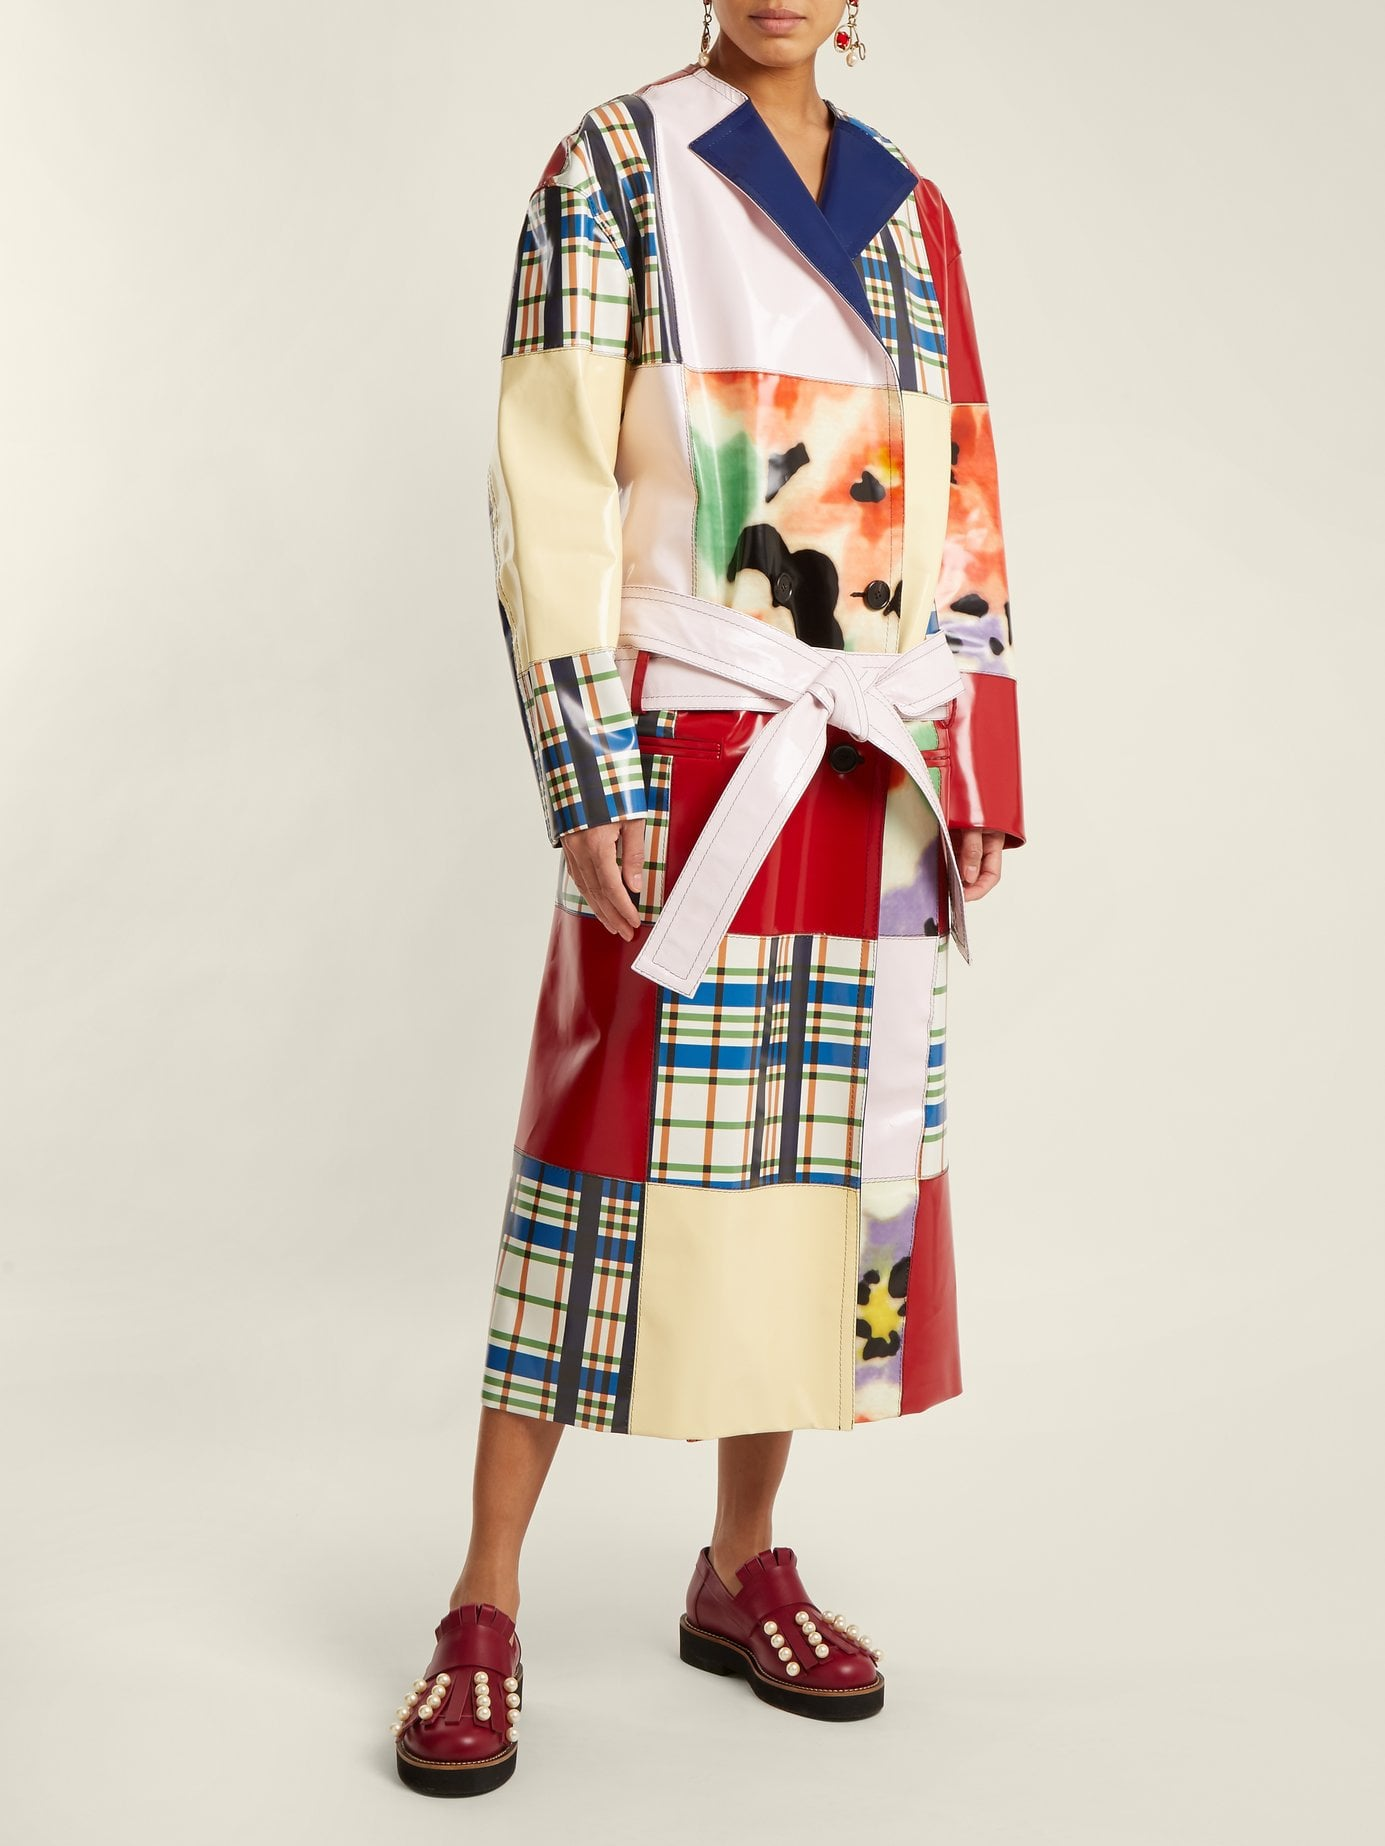 Marni-Patchwork-Belted-Leather-Coat.jpg